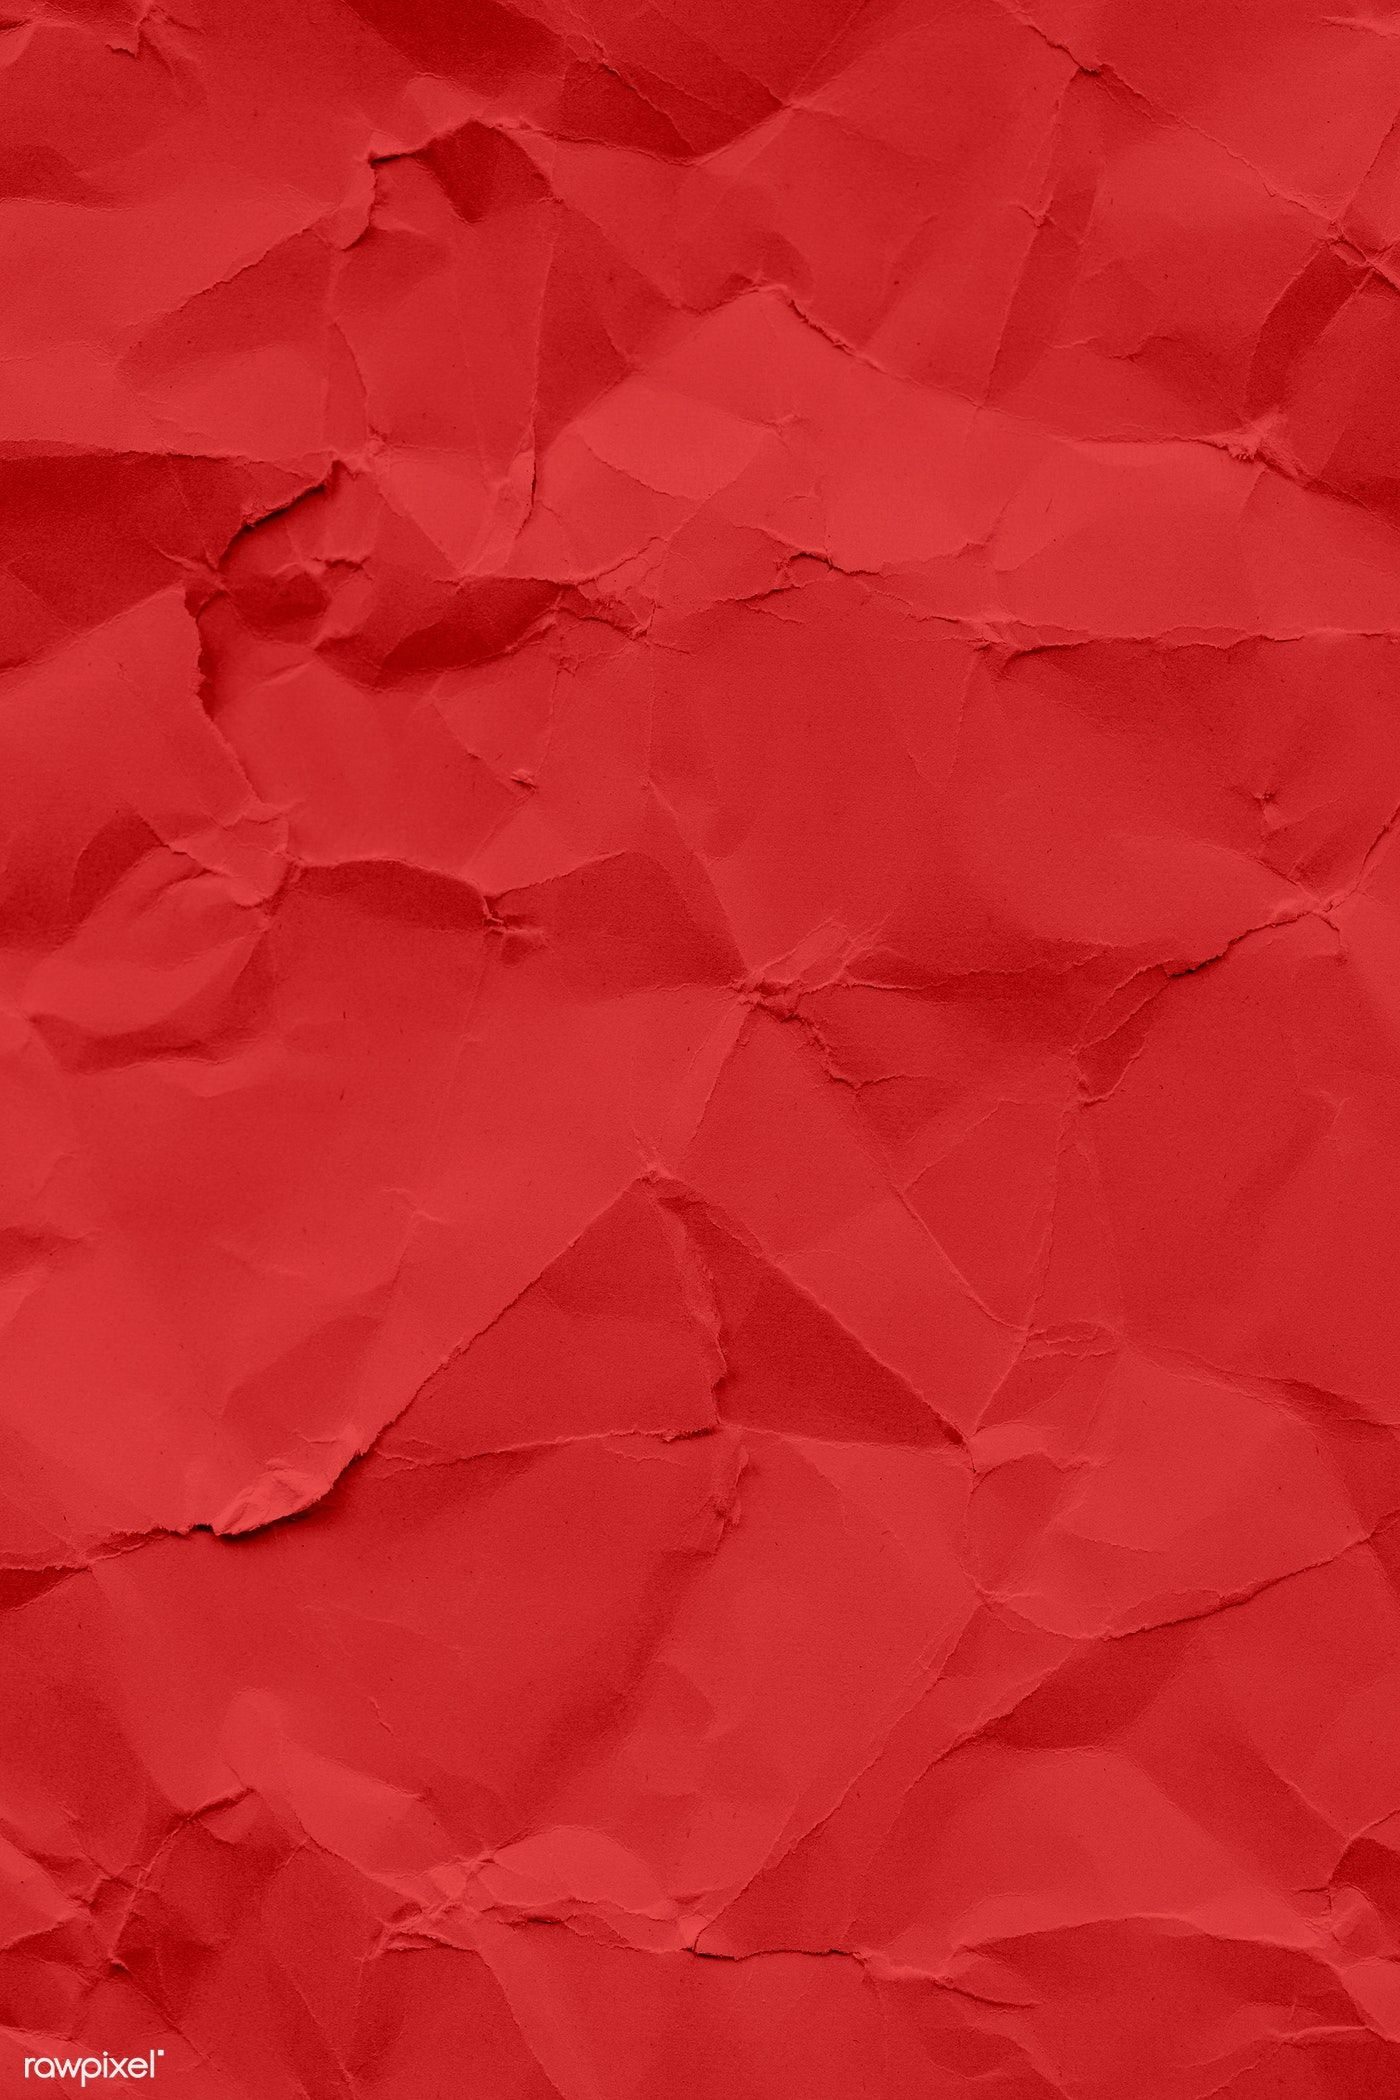 Download Premium Illustration Of Red Wrinkled Paper Pattern Background Red Texture Background Red Paper Texture Paper Background Texture